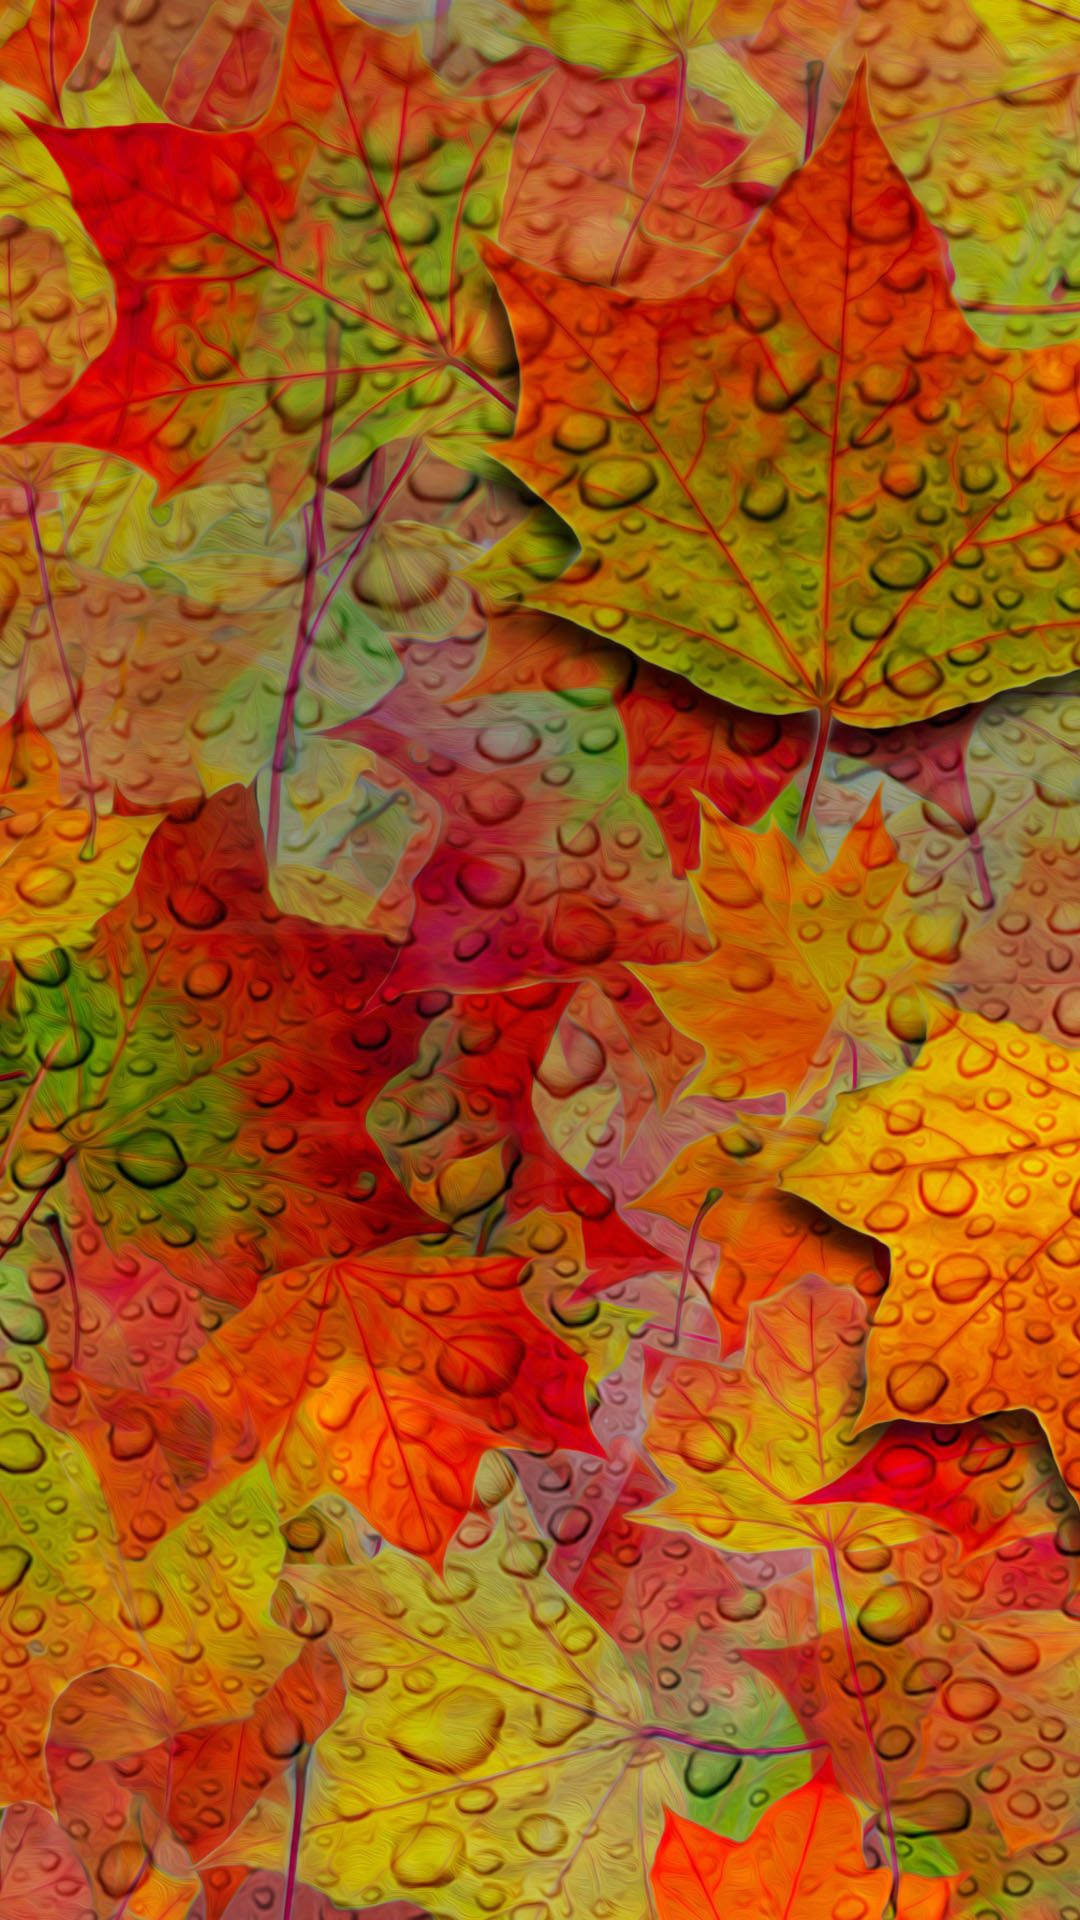 Fall Leaves Wallpaper Powerpoint Background Wallpapers Of The Week Autumn